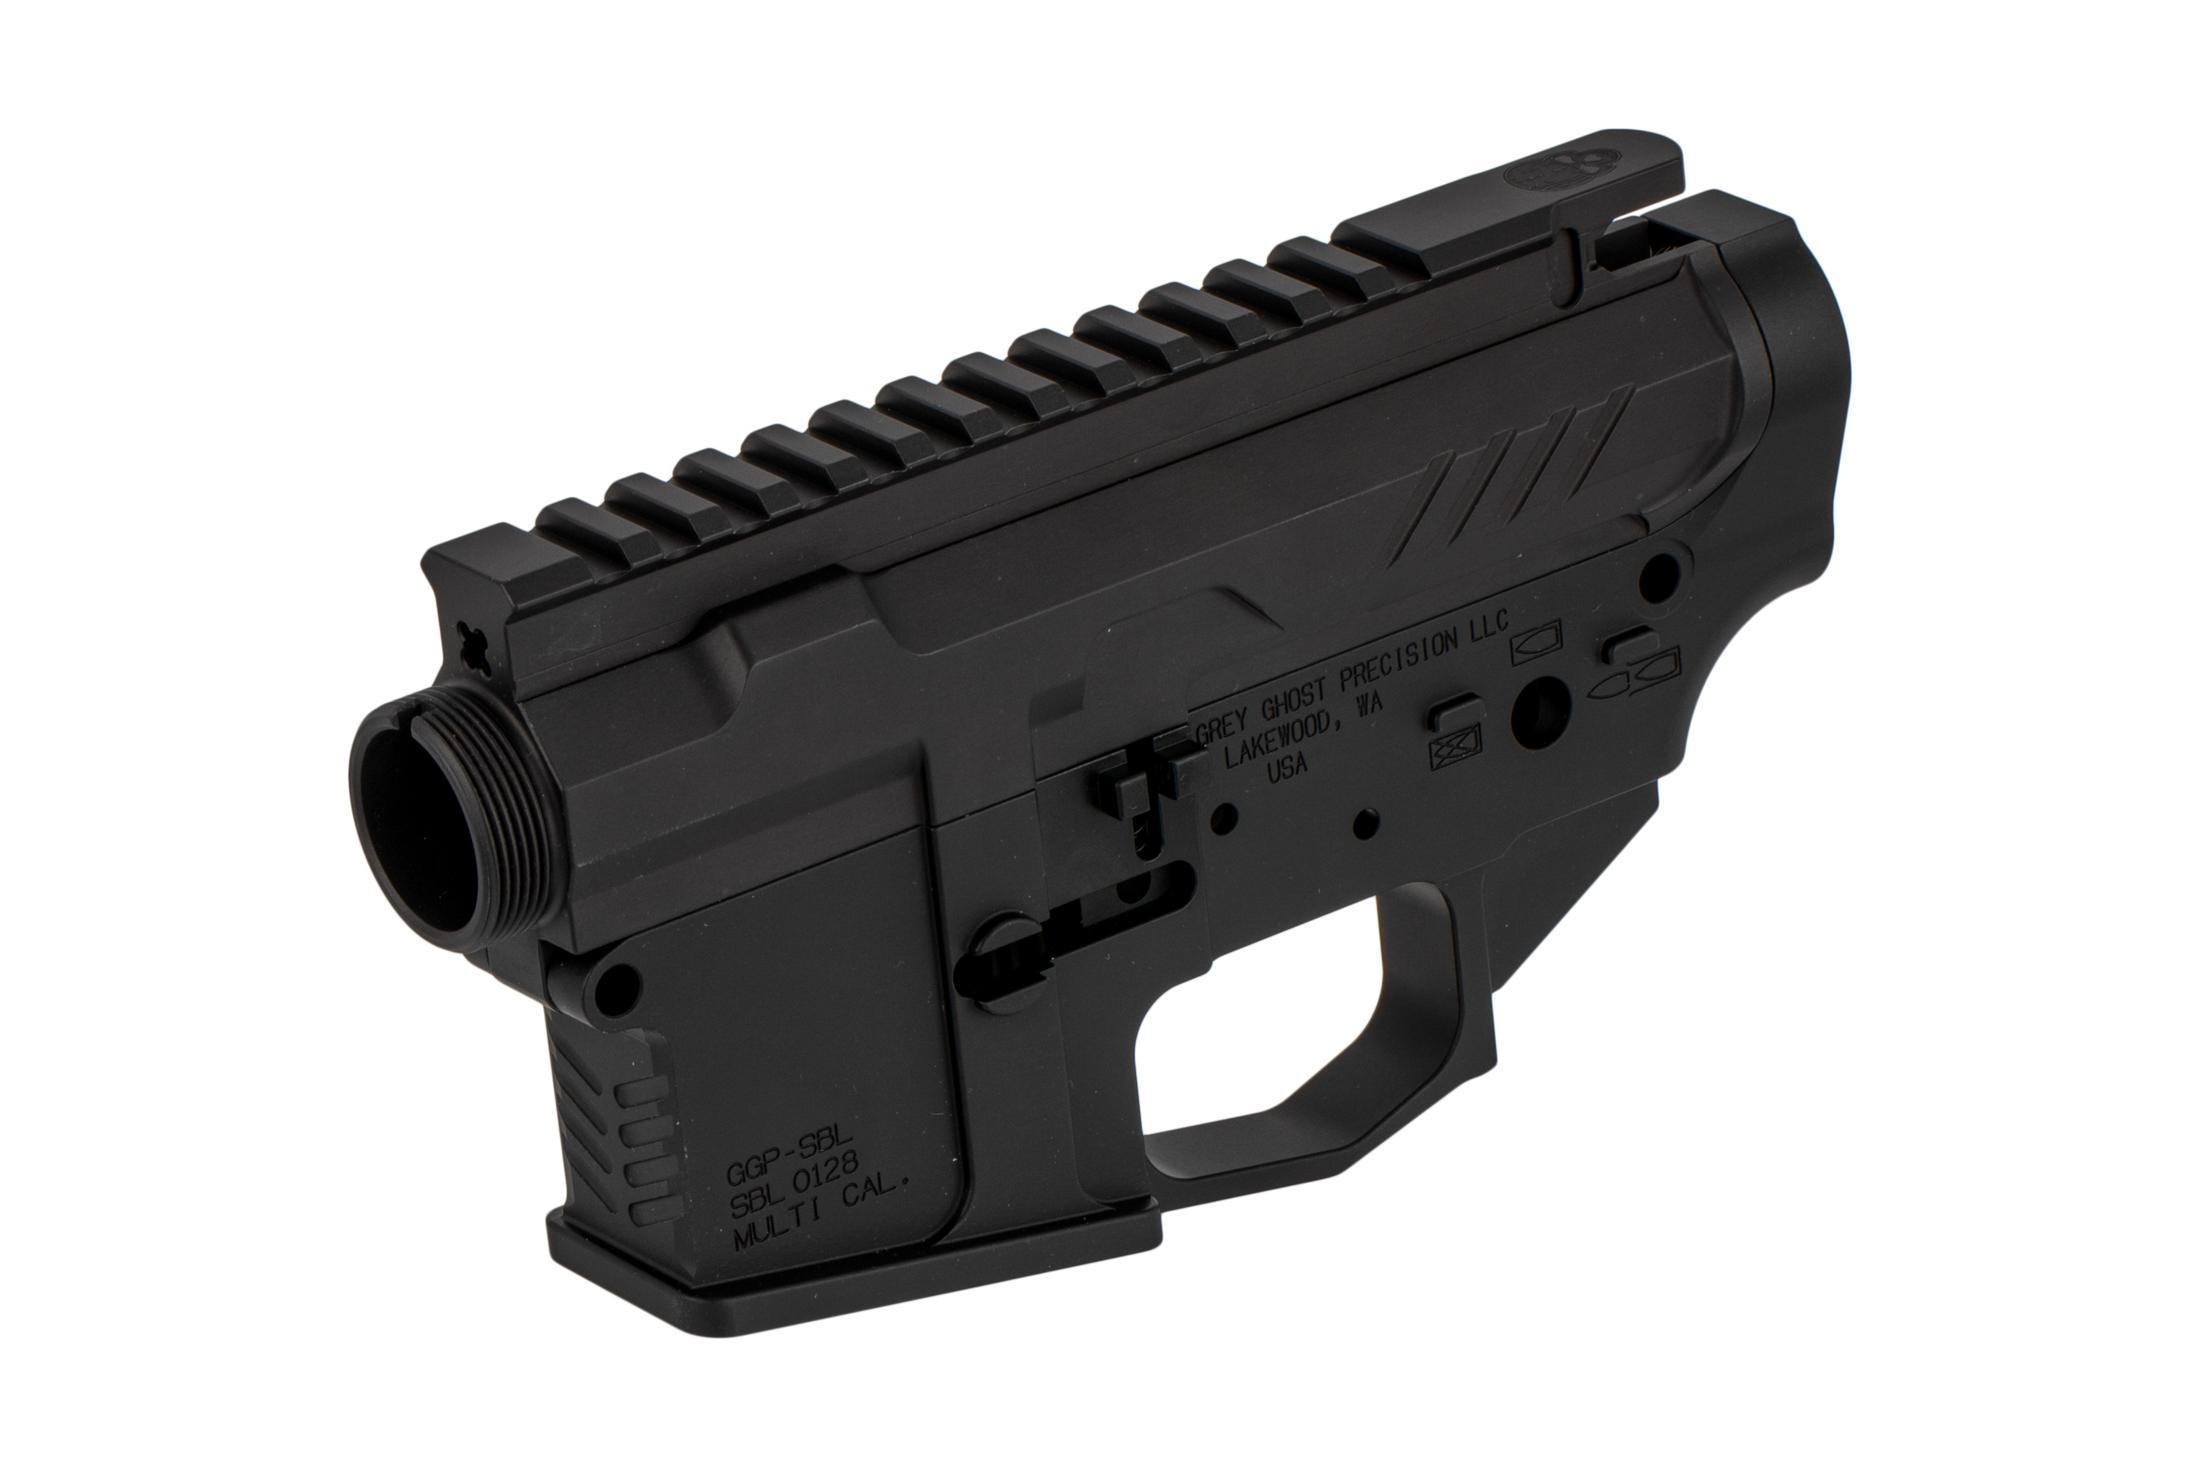 Grey Ghost Precision multi-caliber marked MKII Billet stripped AR 15 receiver set with chevron magwell texture